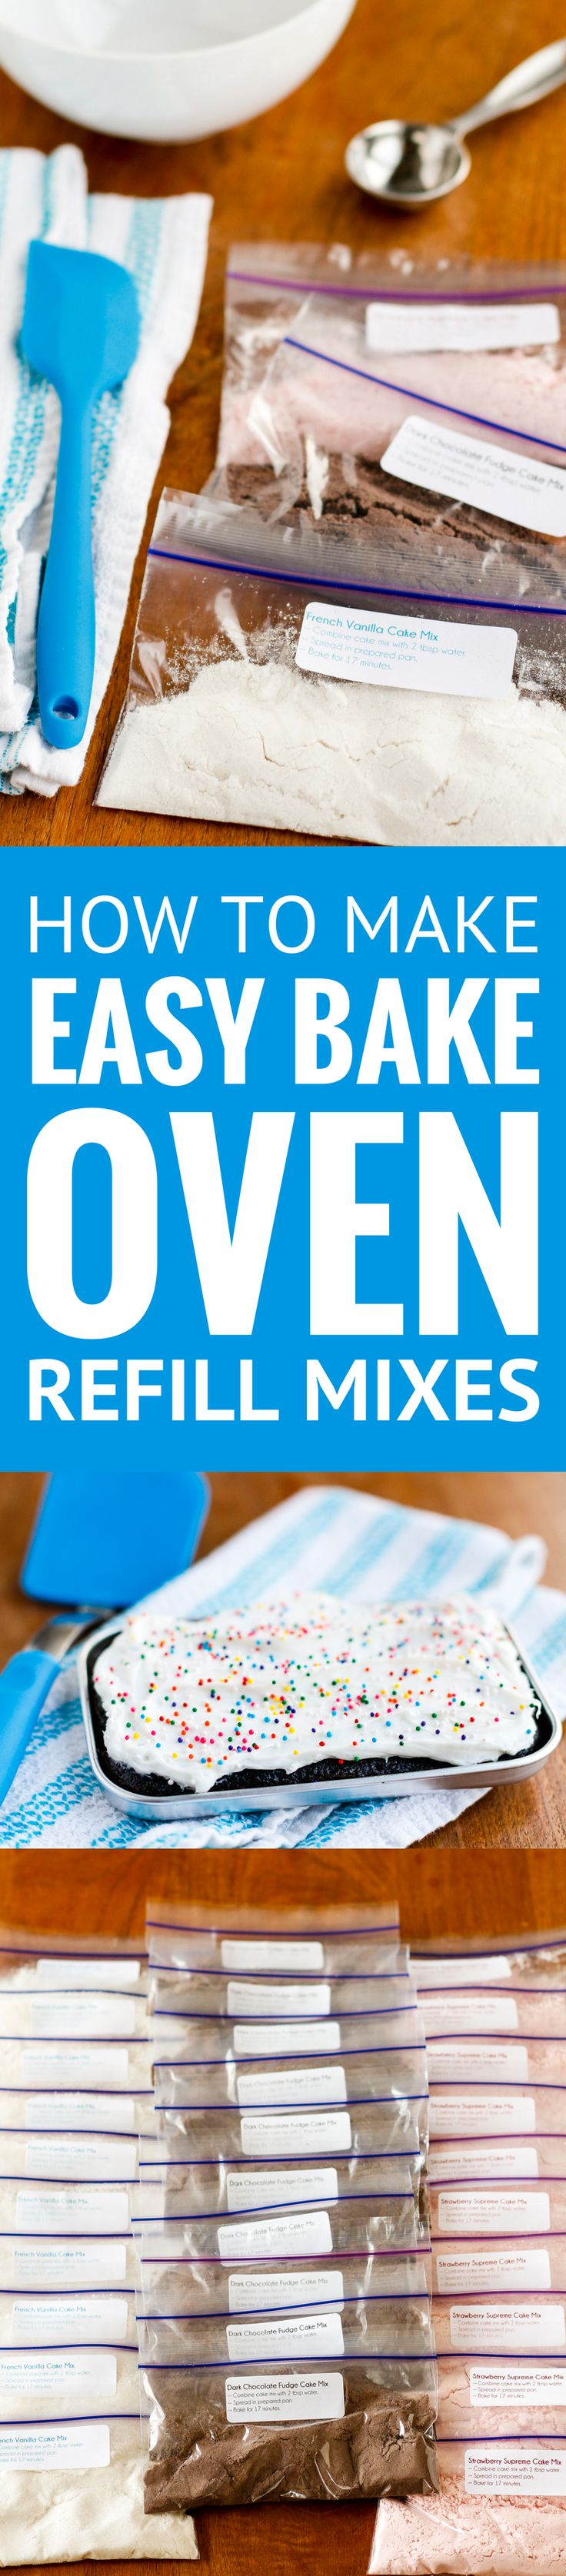 How To Make Easy Bake Oven Mixes -- learn how to make your own Easy Bake Oven refills from boxed cake mixes, yields 33 refills for under $4!!! If you have kids that love to bake with their Easy Bake Oven, you NEED to read this now... | easy bake oven mixes diy | easy bake oven mixes recipes | easy bake oven mixes homemade | easy bake oven homemade mixes | easy bake oven recipes | easy bake oven recipes diy | find the tutorial on unsophisticook.com #kids #kidscrafts #easybake #easybakeoven